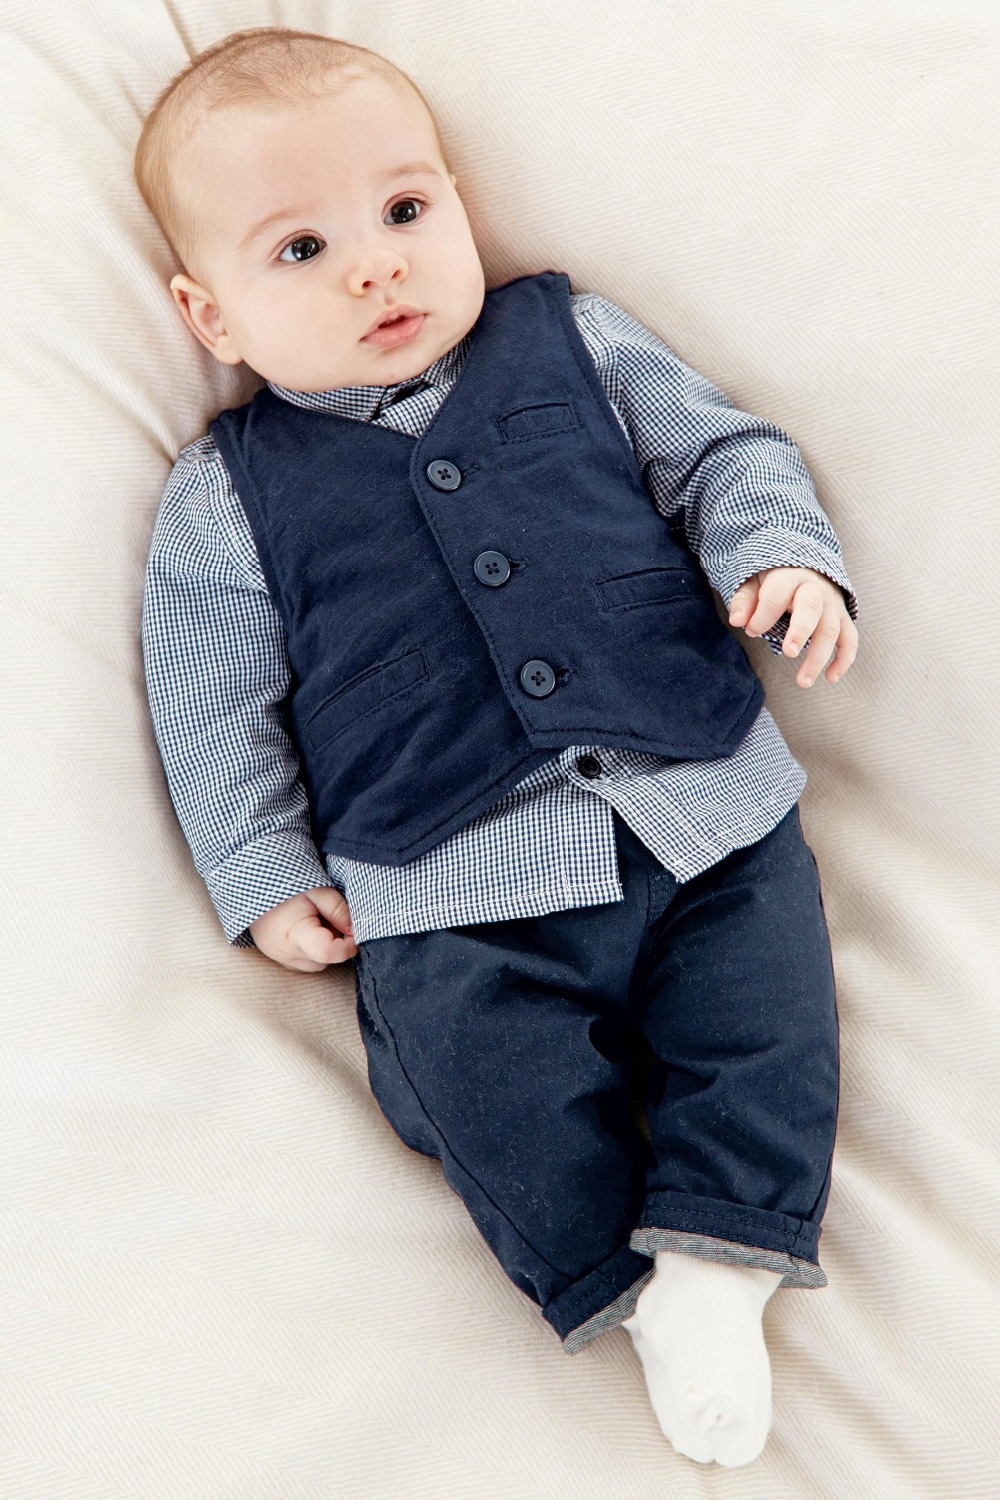 Shop for newborn baby boy clothes at Carter's and find tops, bottoms, PJs and more. Browse by size and color for great newborn boy clothing at deletzloads.tk